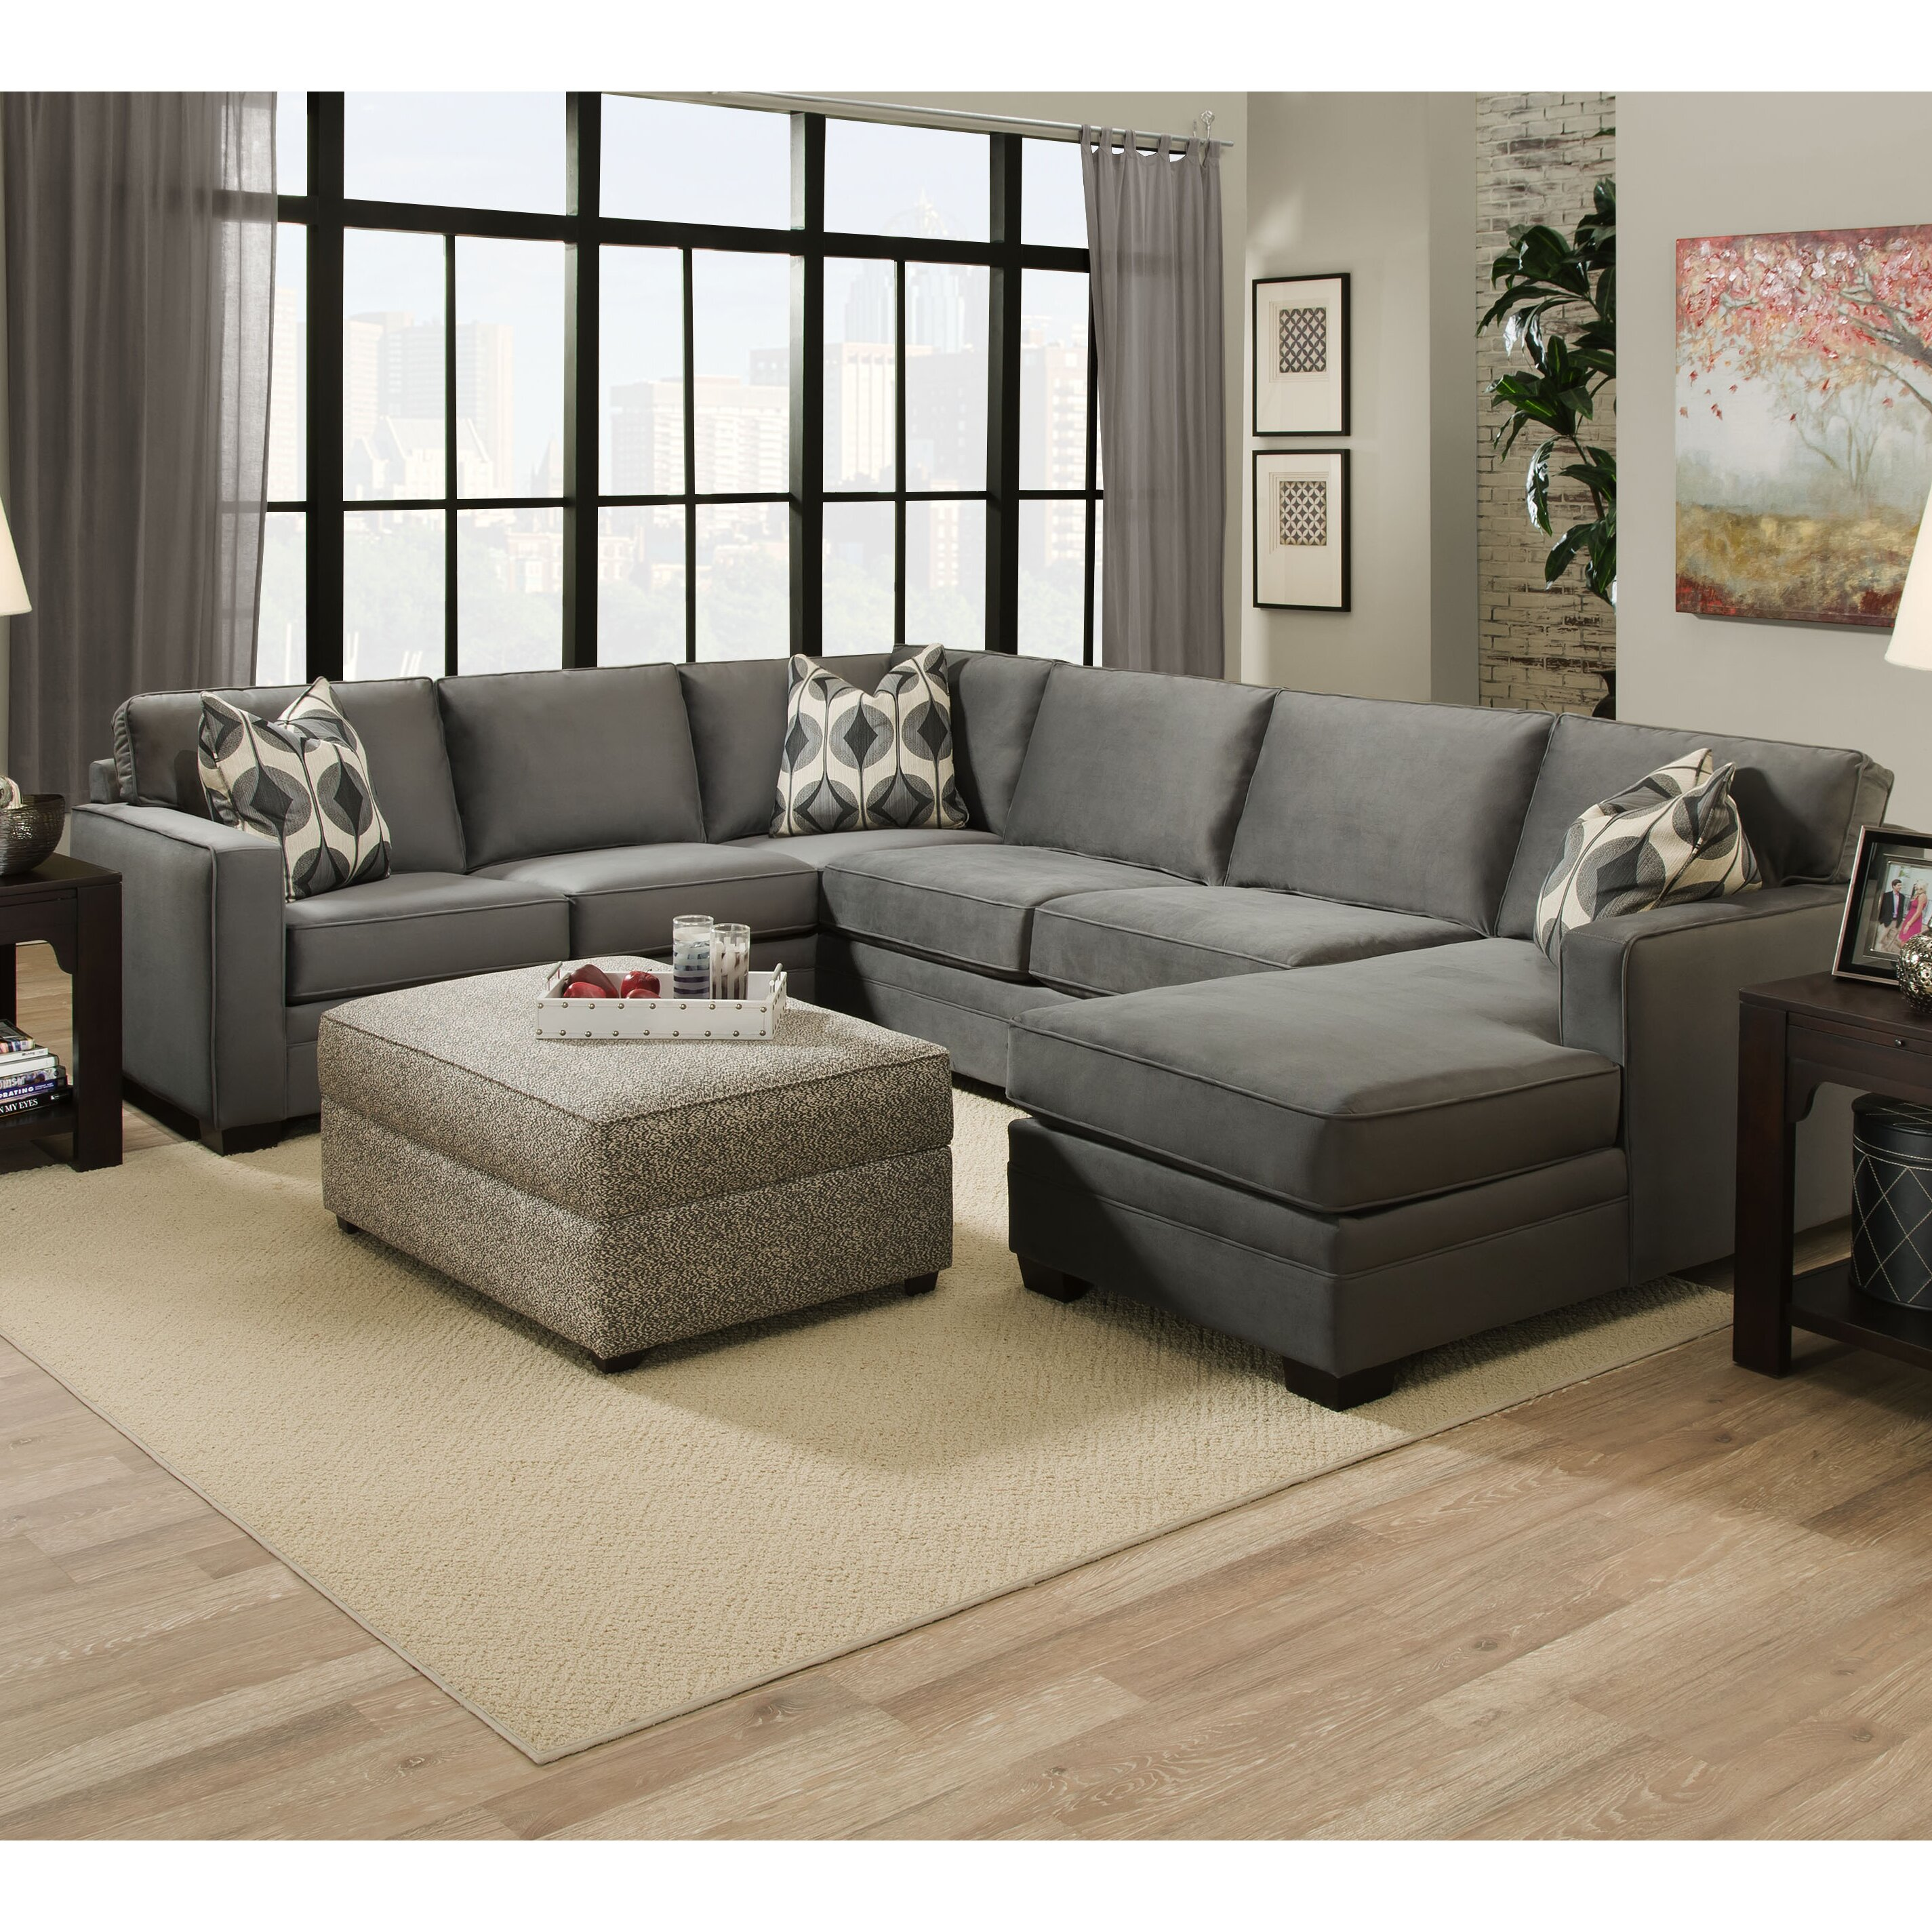 bauhaus sectional sofa with chaise